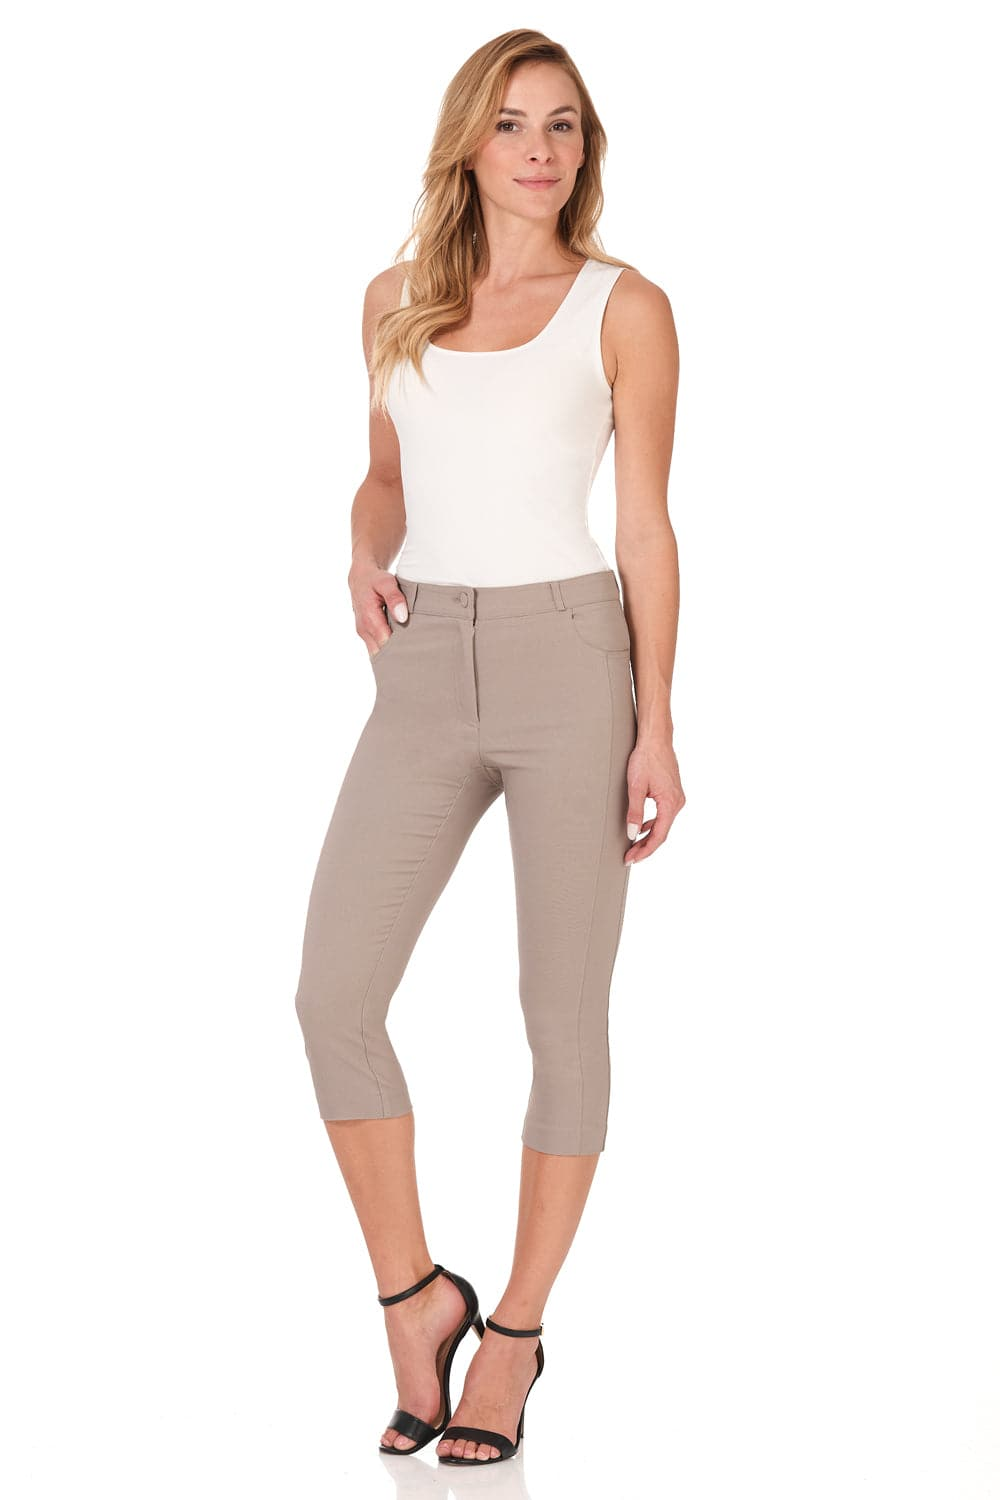 Iconic Comfort Stretch 5 Pocket Slim Fit Skinny Capri with Zipper Closure